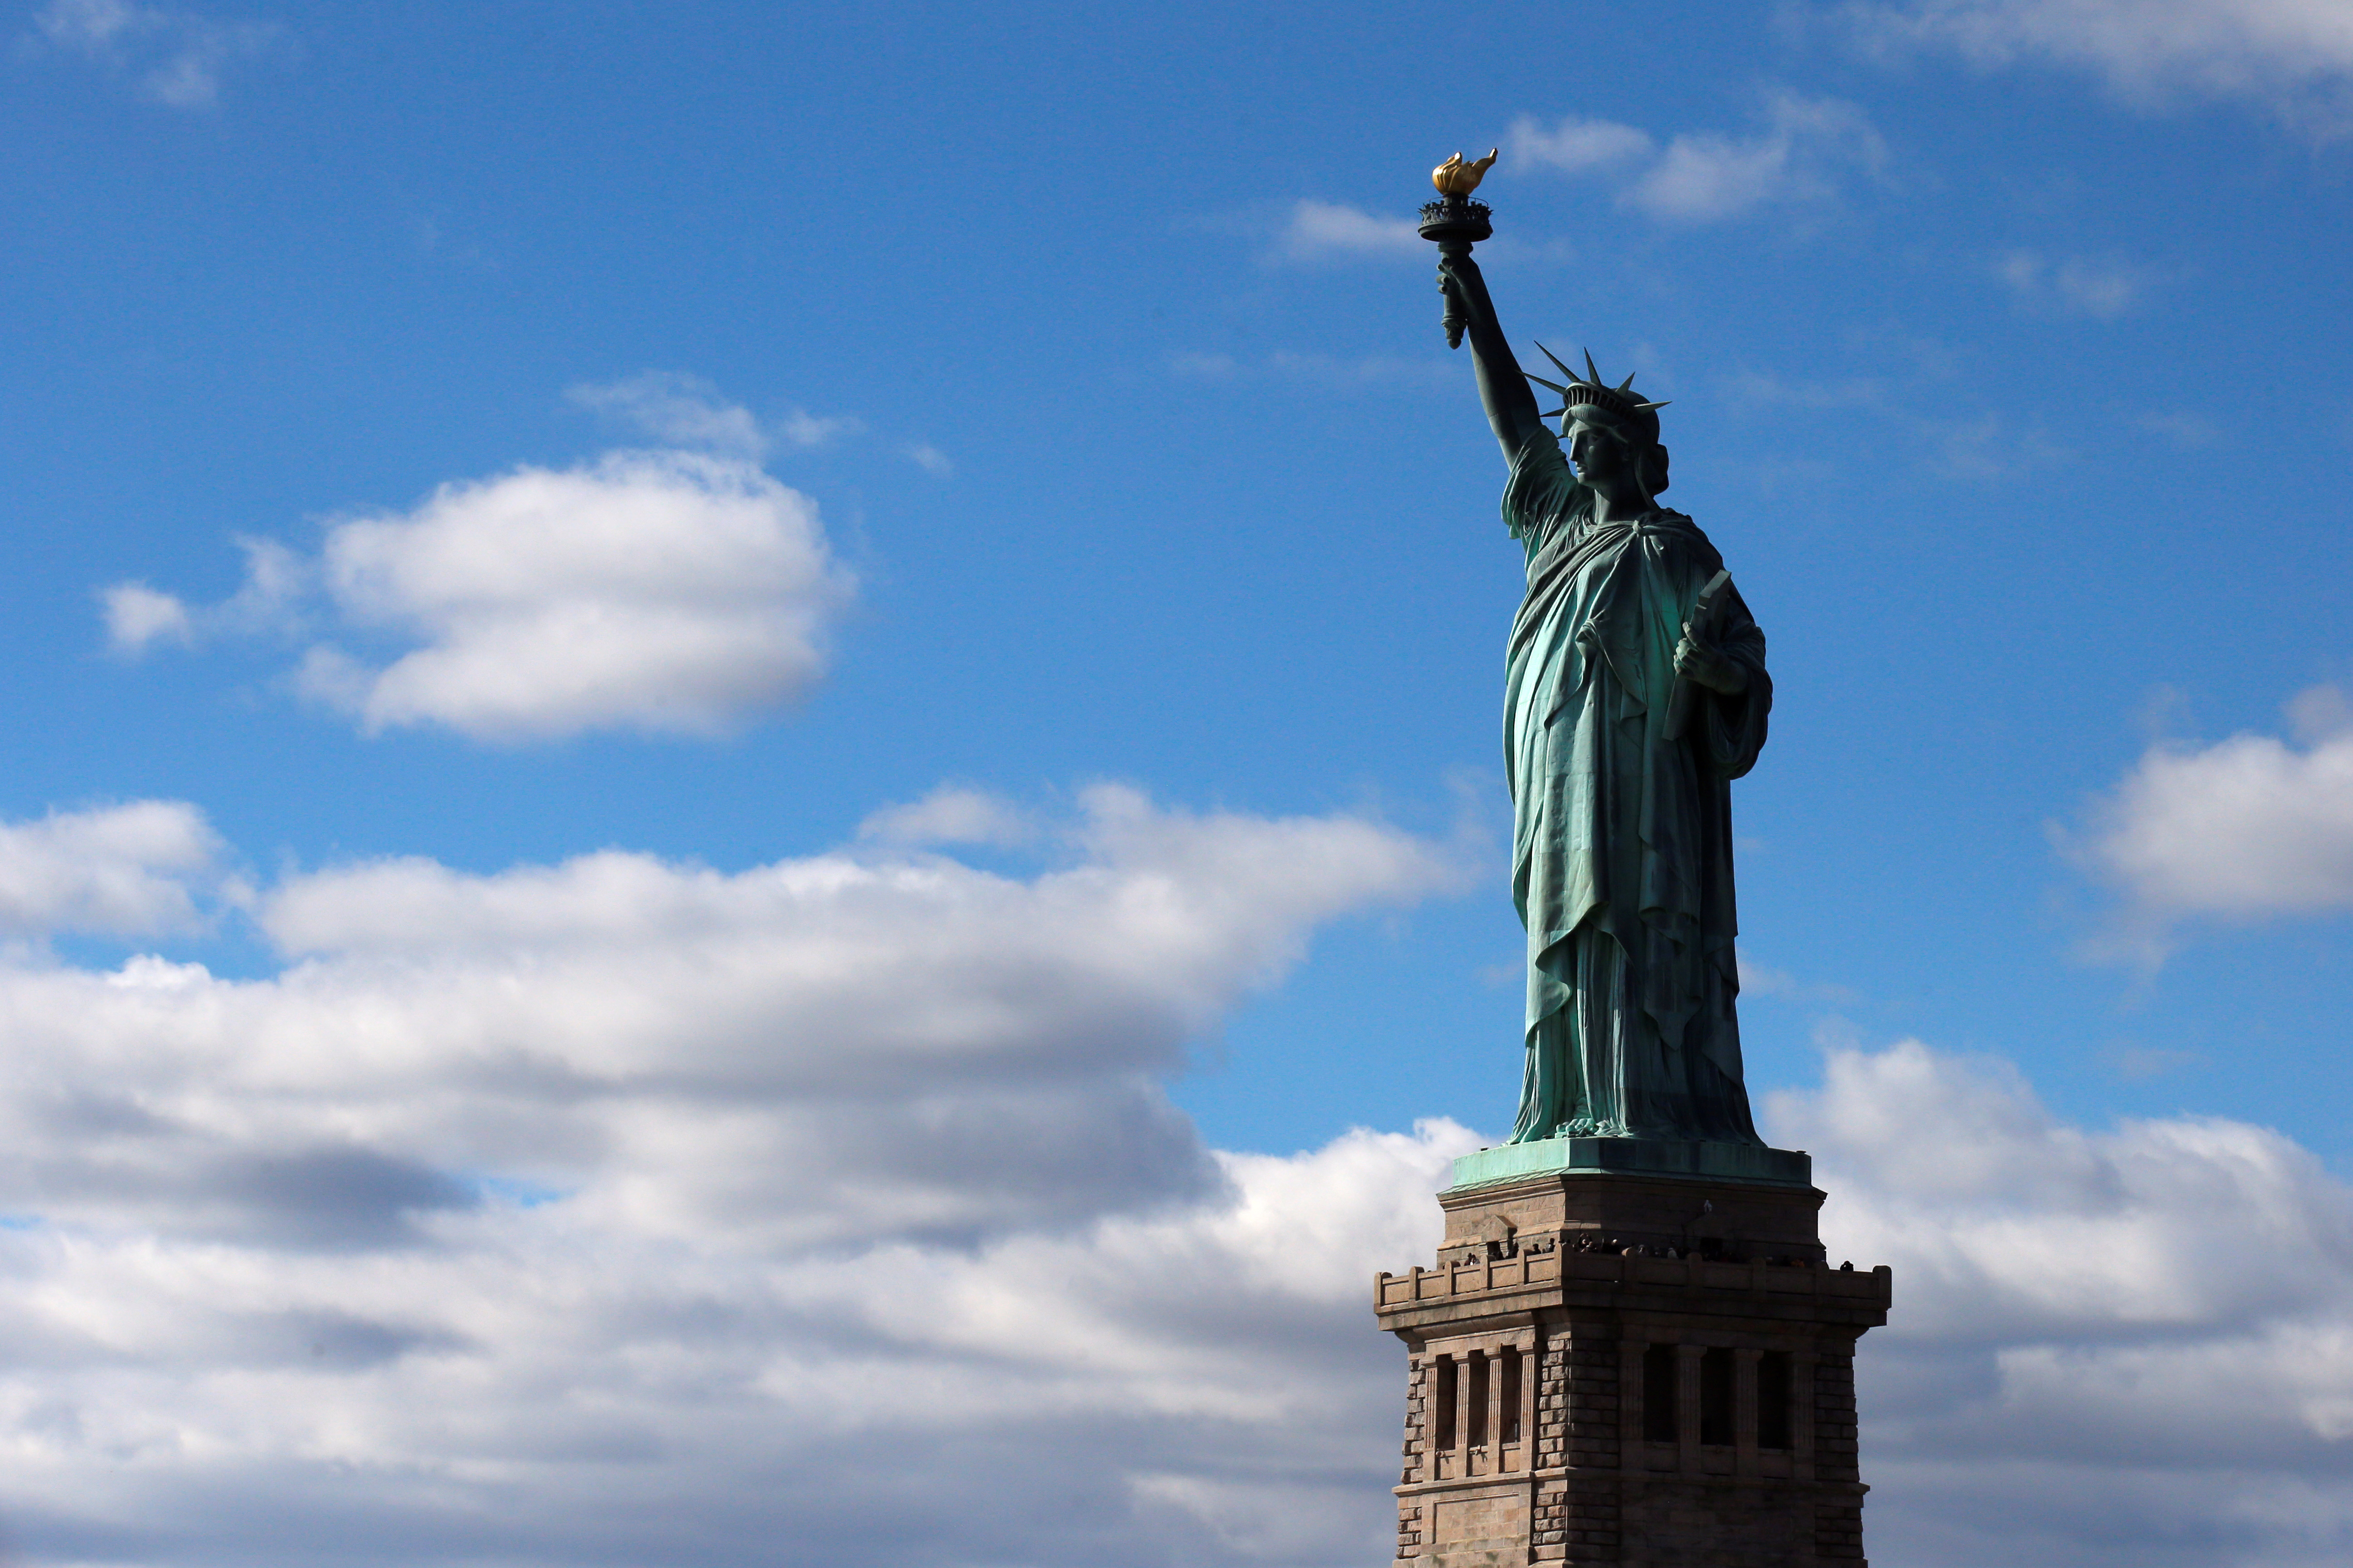 The Statue of Liberty is seen on the 130th anniversary of the dedication in New York Harbor